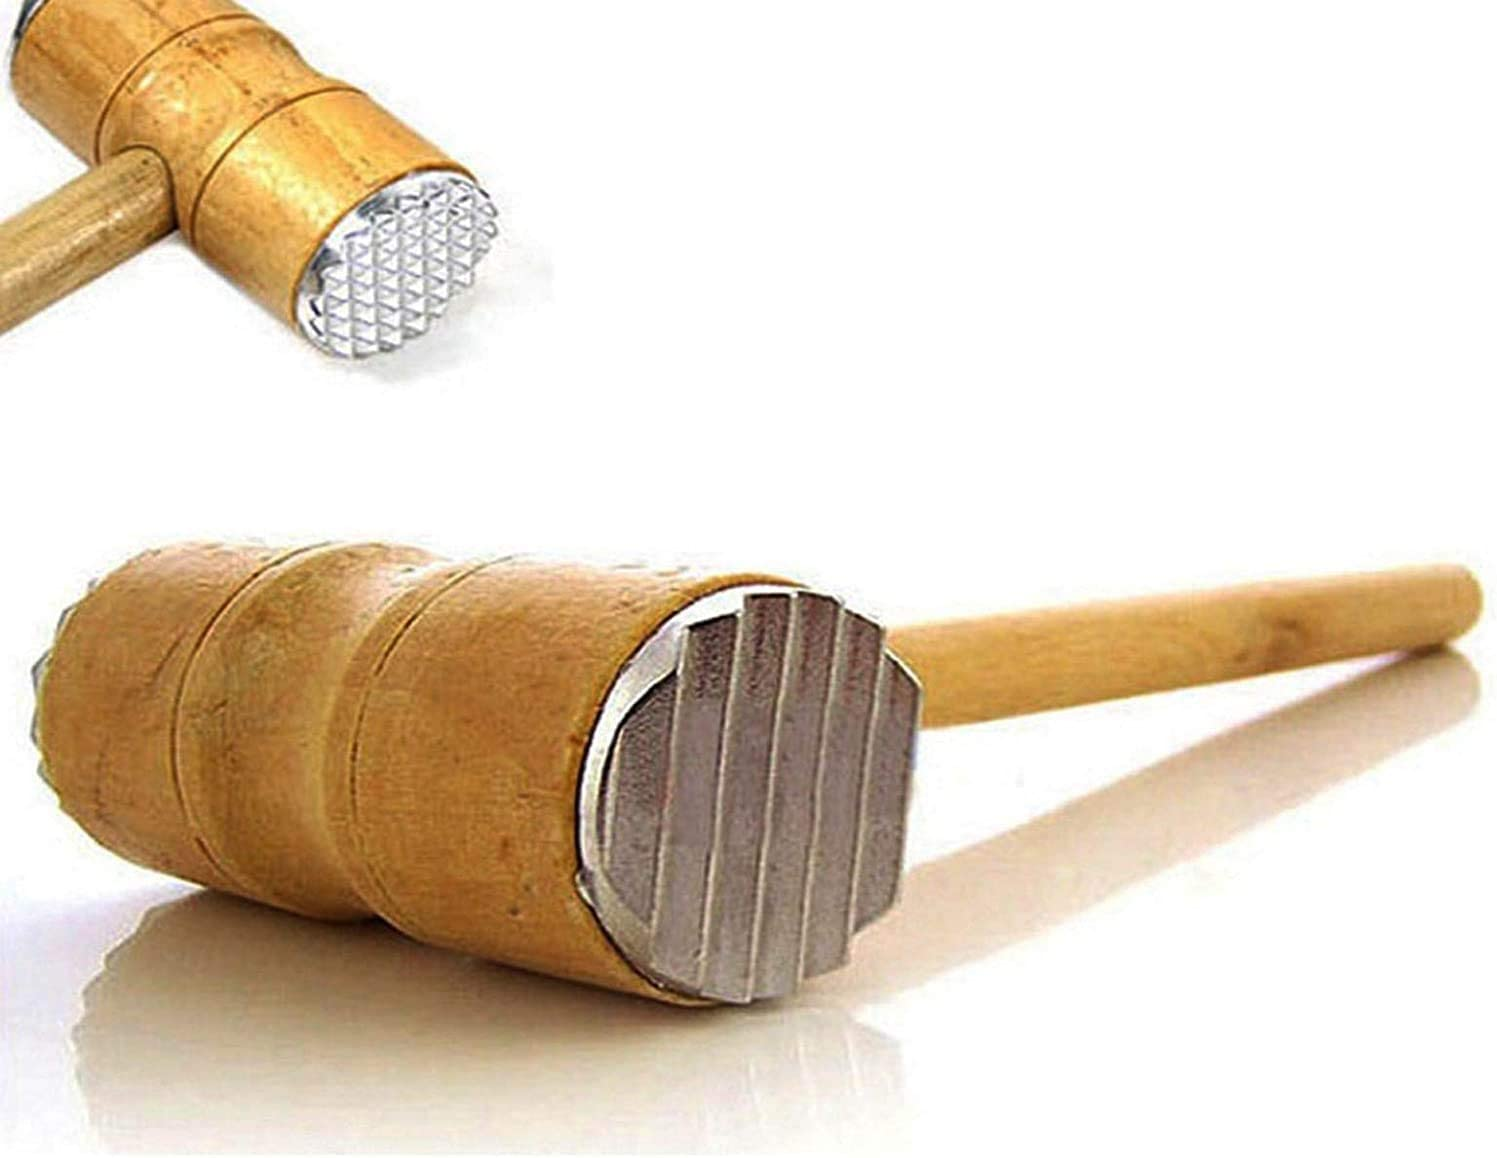 Meat Tenderizer Beef Max Many popular brands 79% OFF Hammer Wooden For Handle Mallet Tool